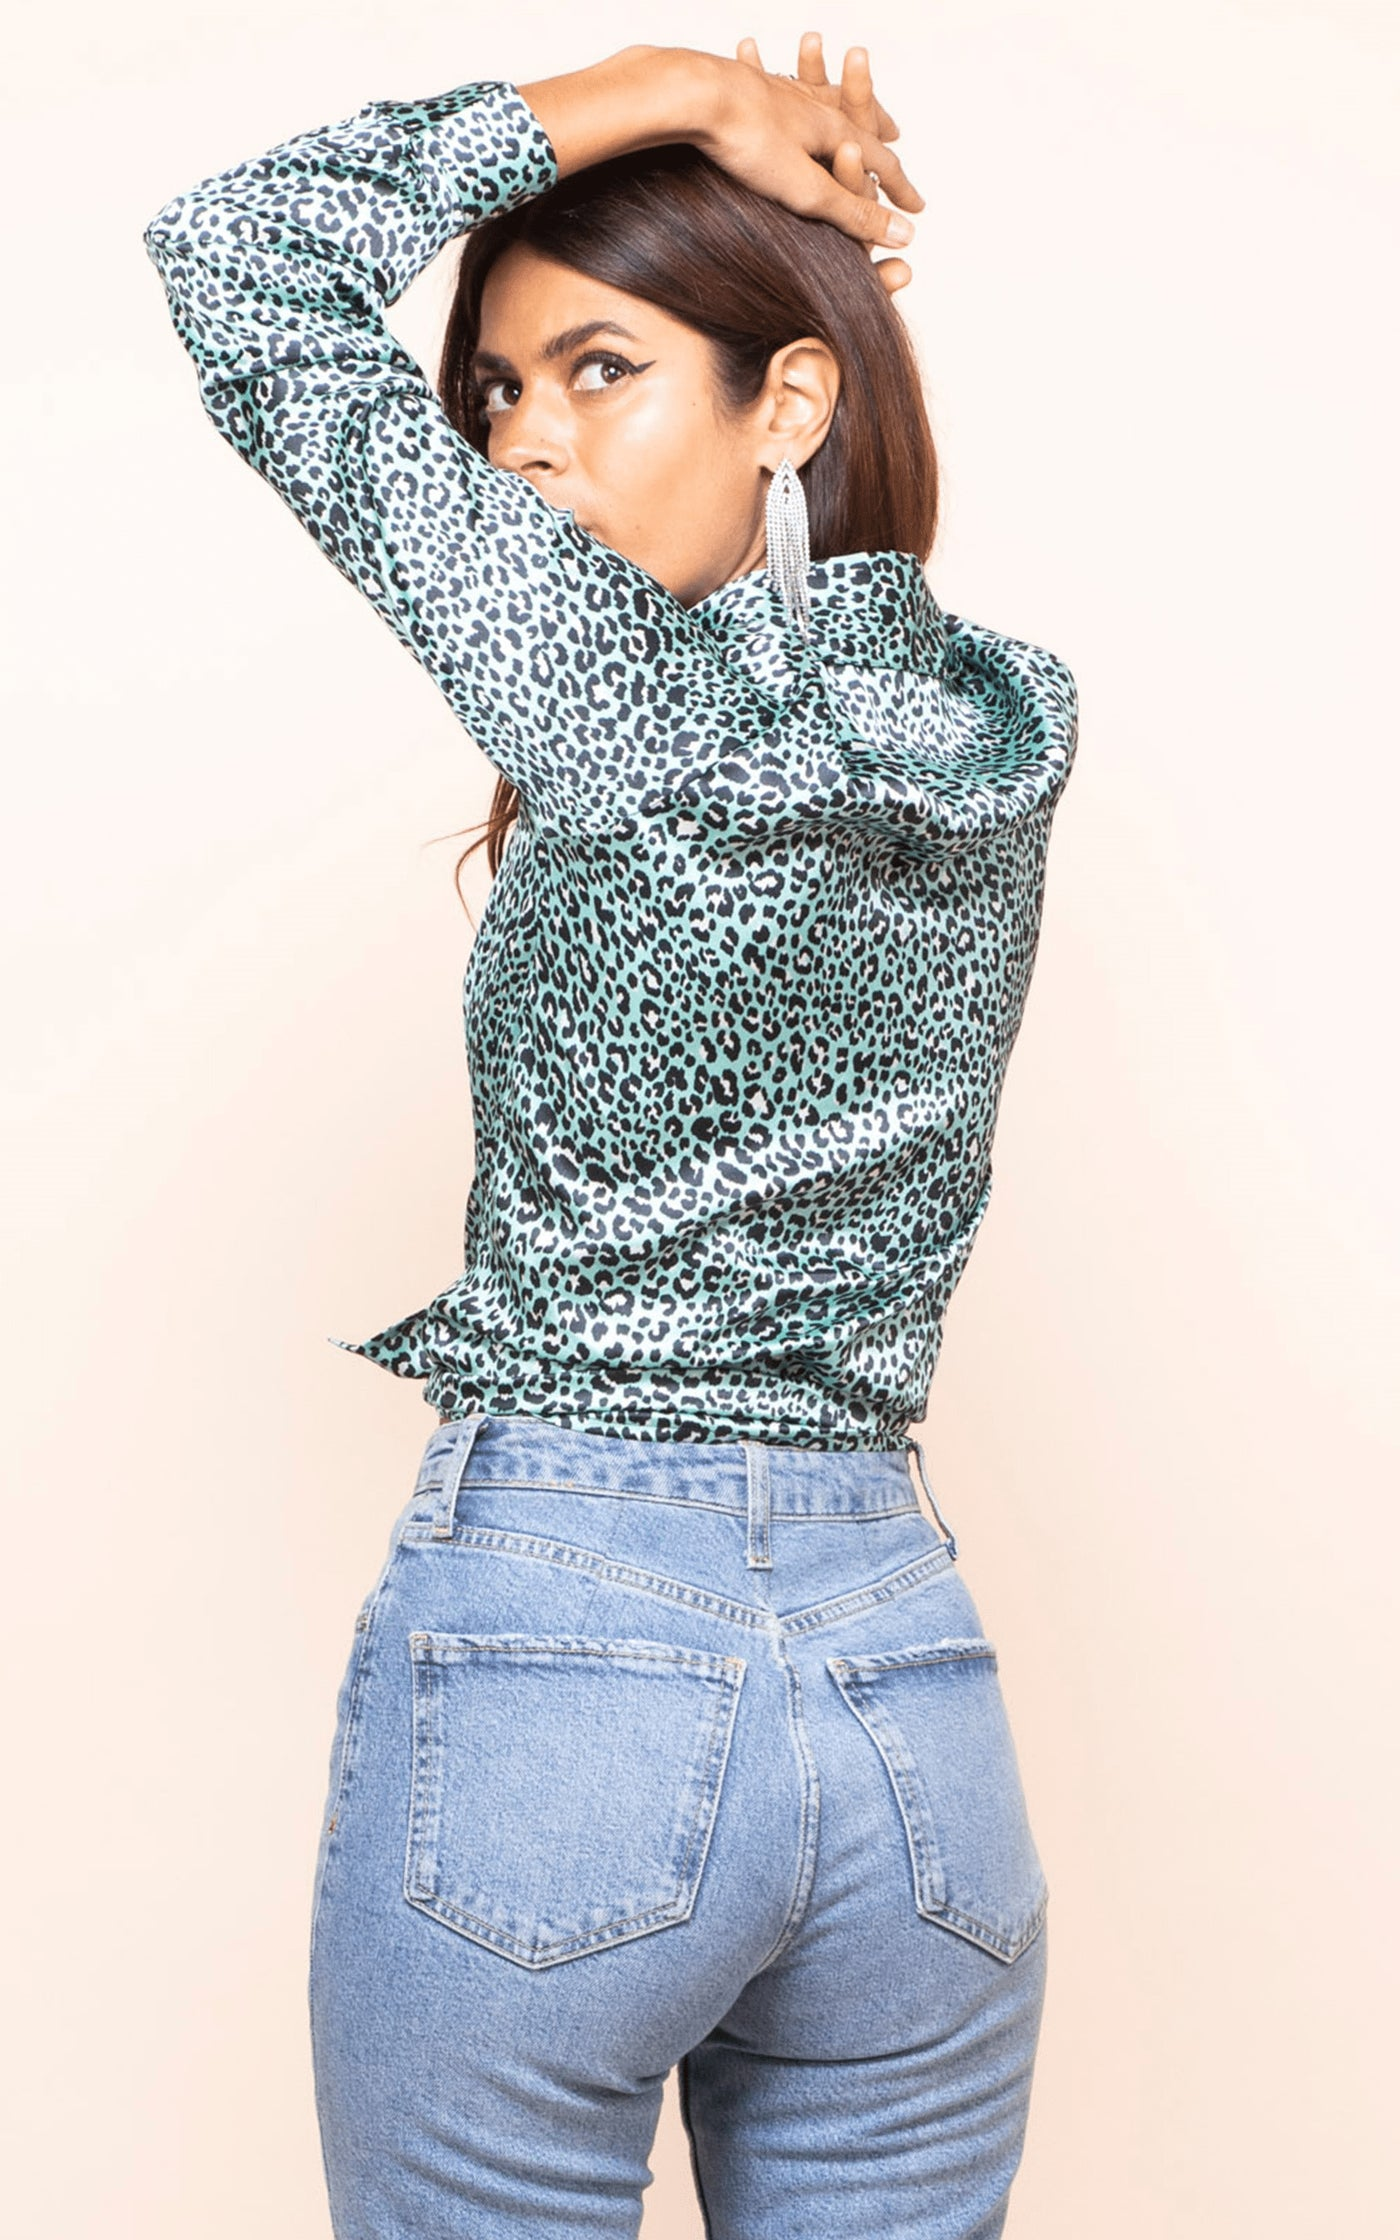 Dancing Leopard model turns backwards with arms up wearing Nevada Shirt in mint leopard print